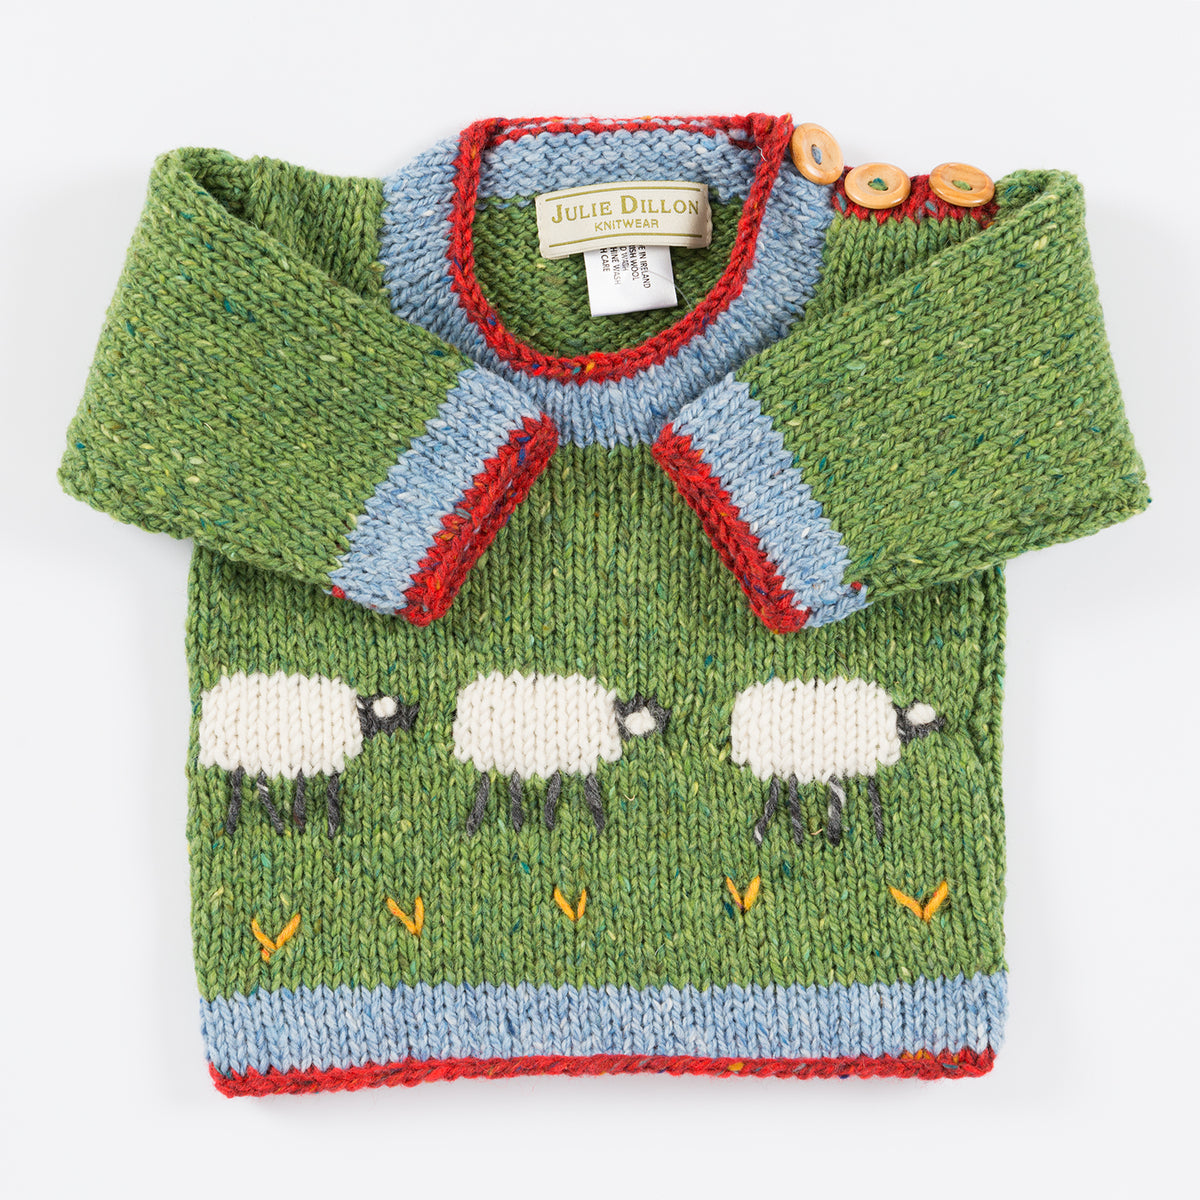 Handknitted Baby Jumper - Green with Sheep motif